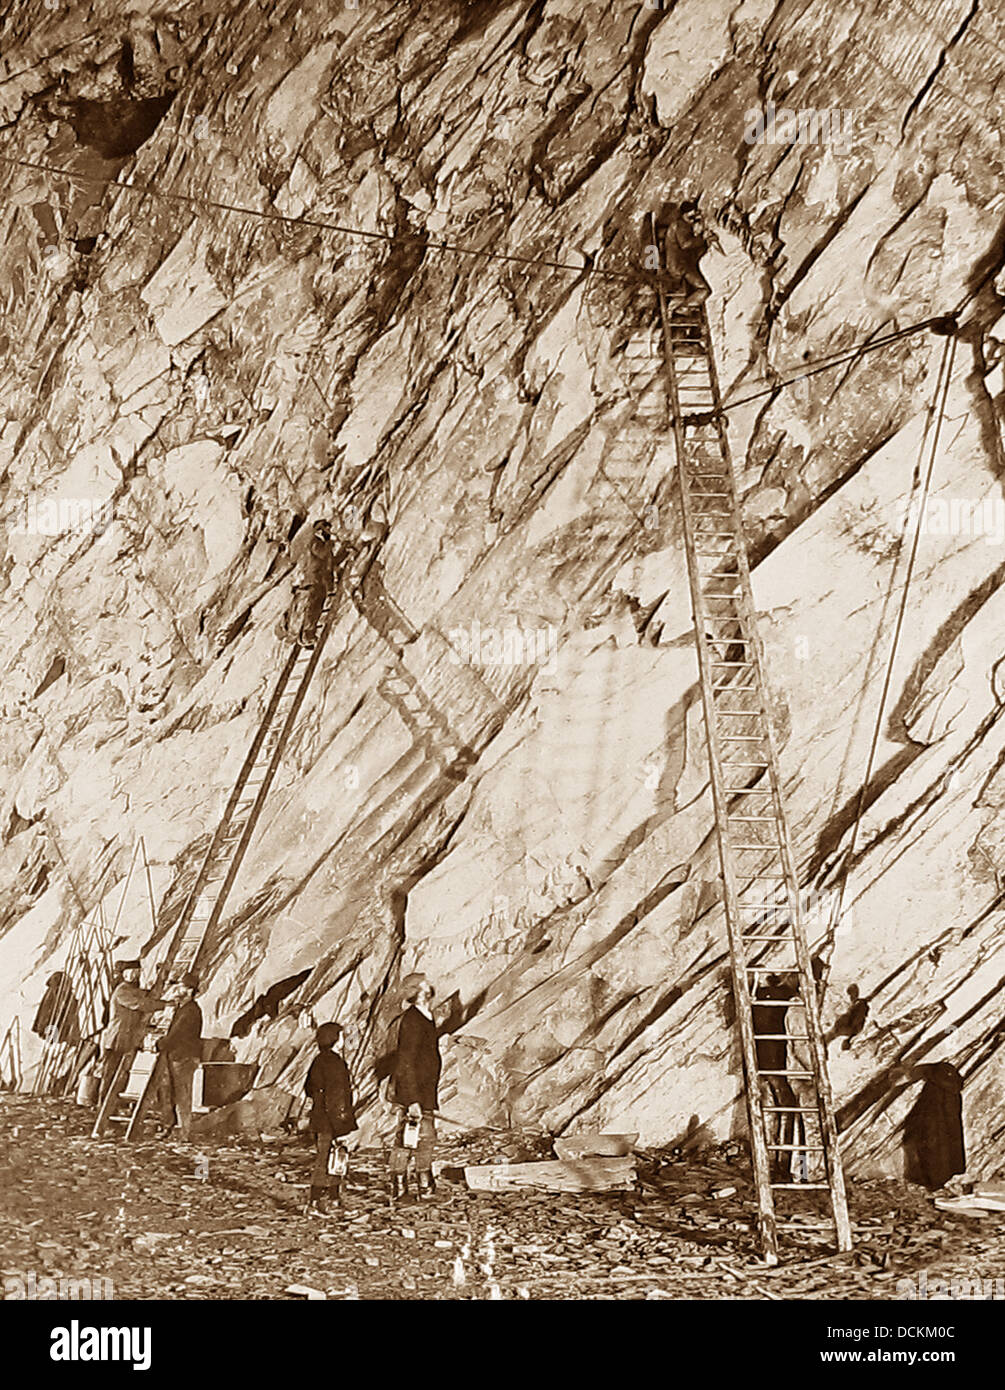 North Wales Slate Quarry / Mine Victorian period - Stock Image